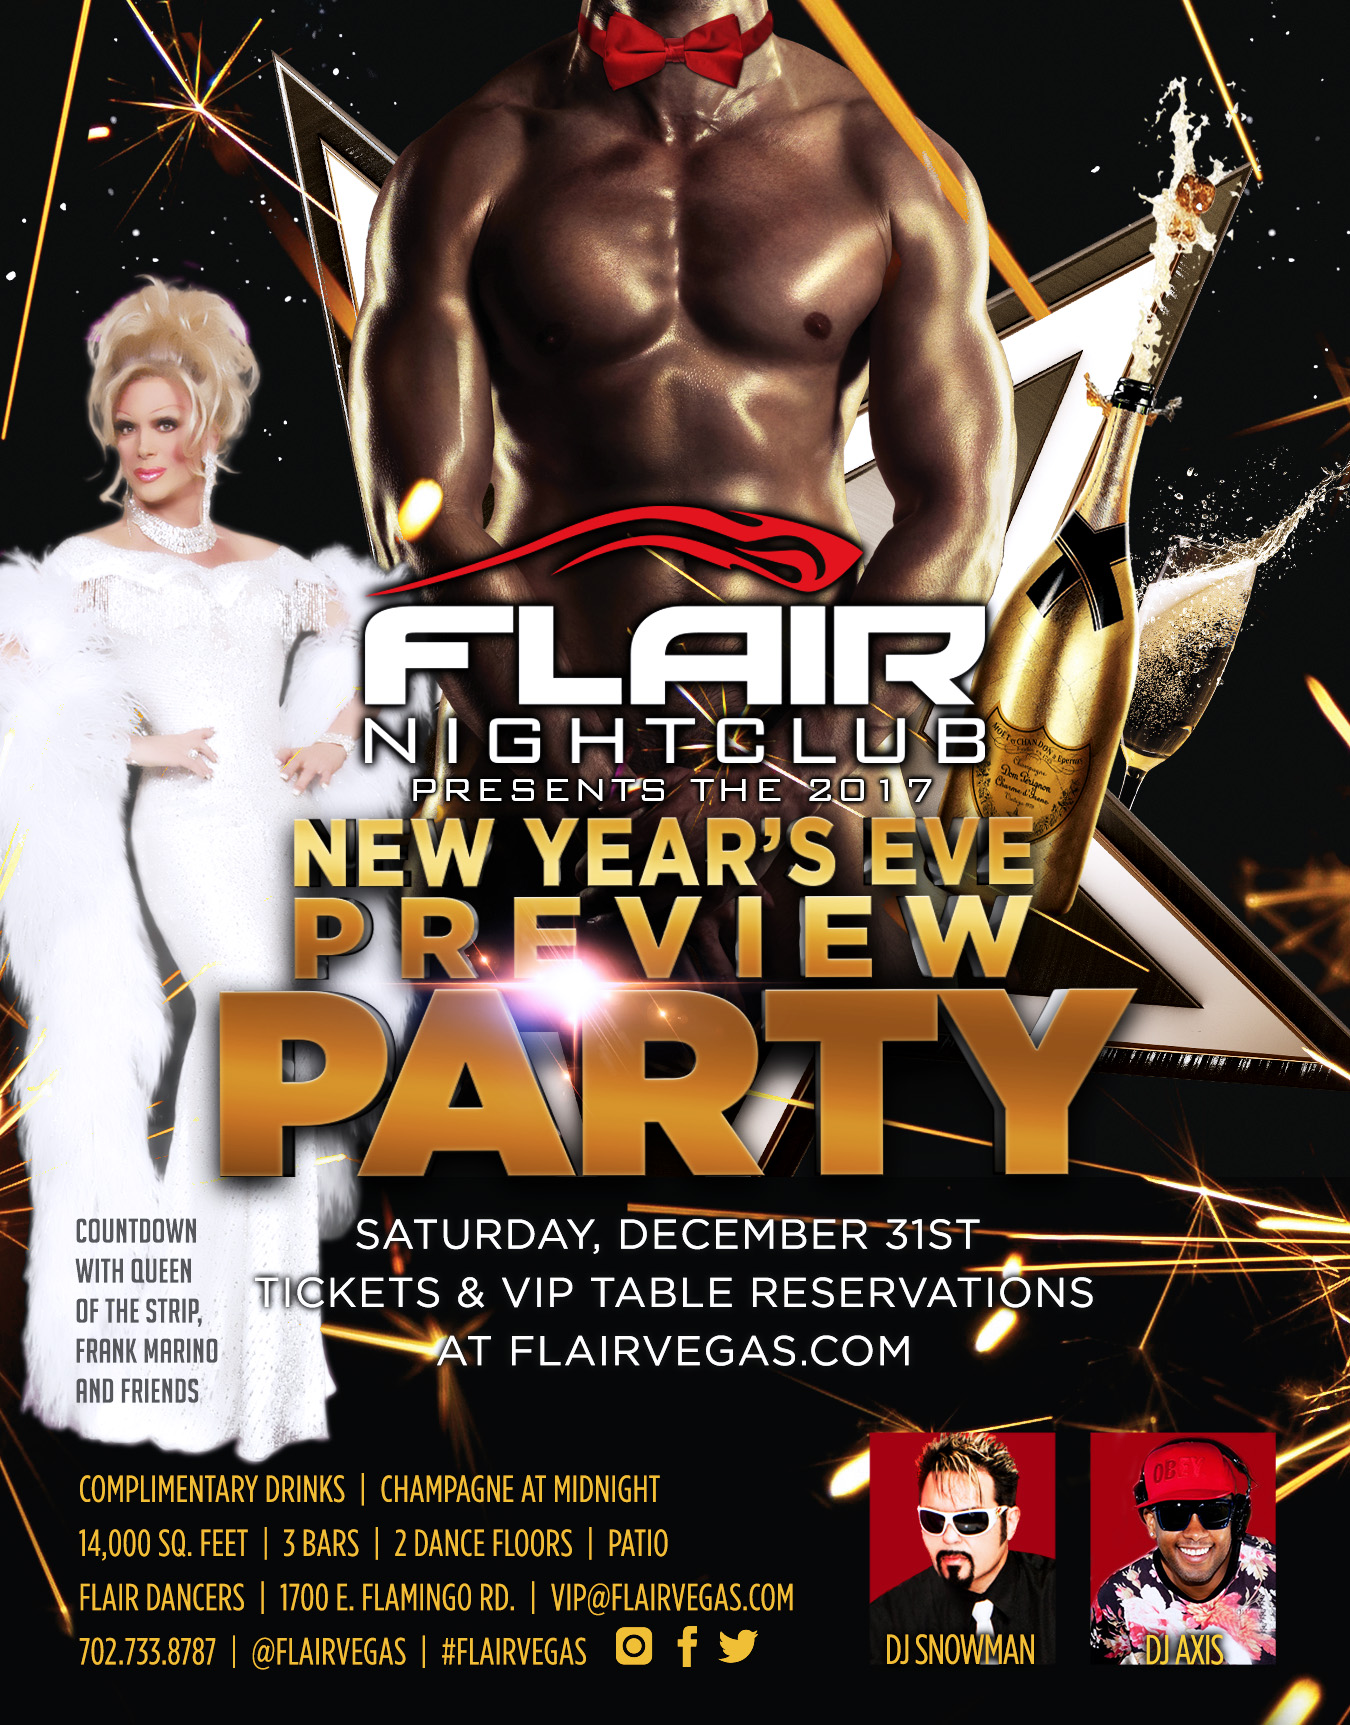 FLAIR nightclub invite